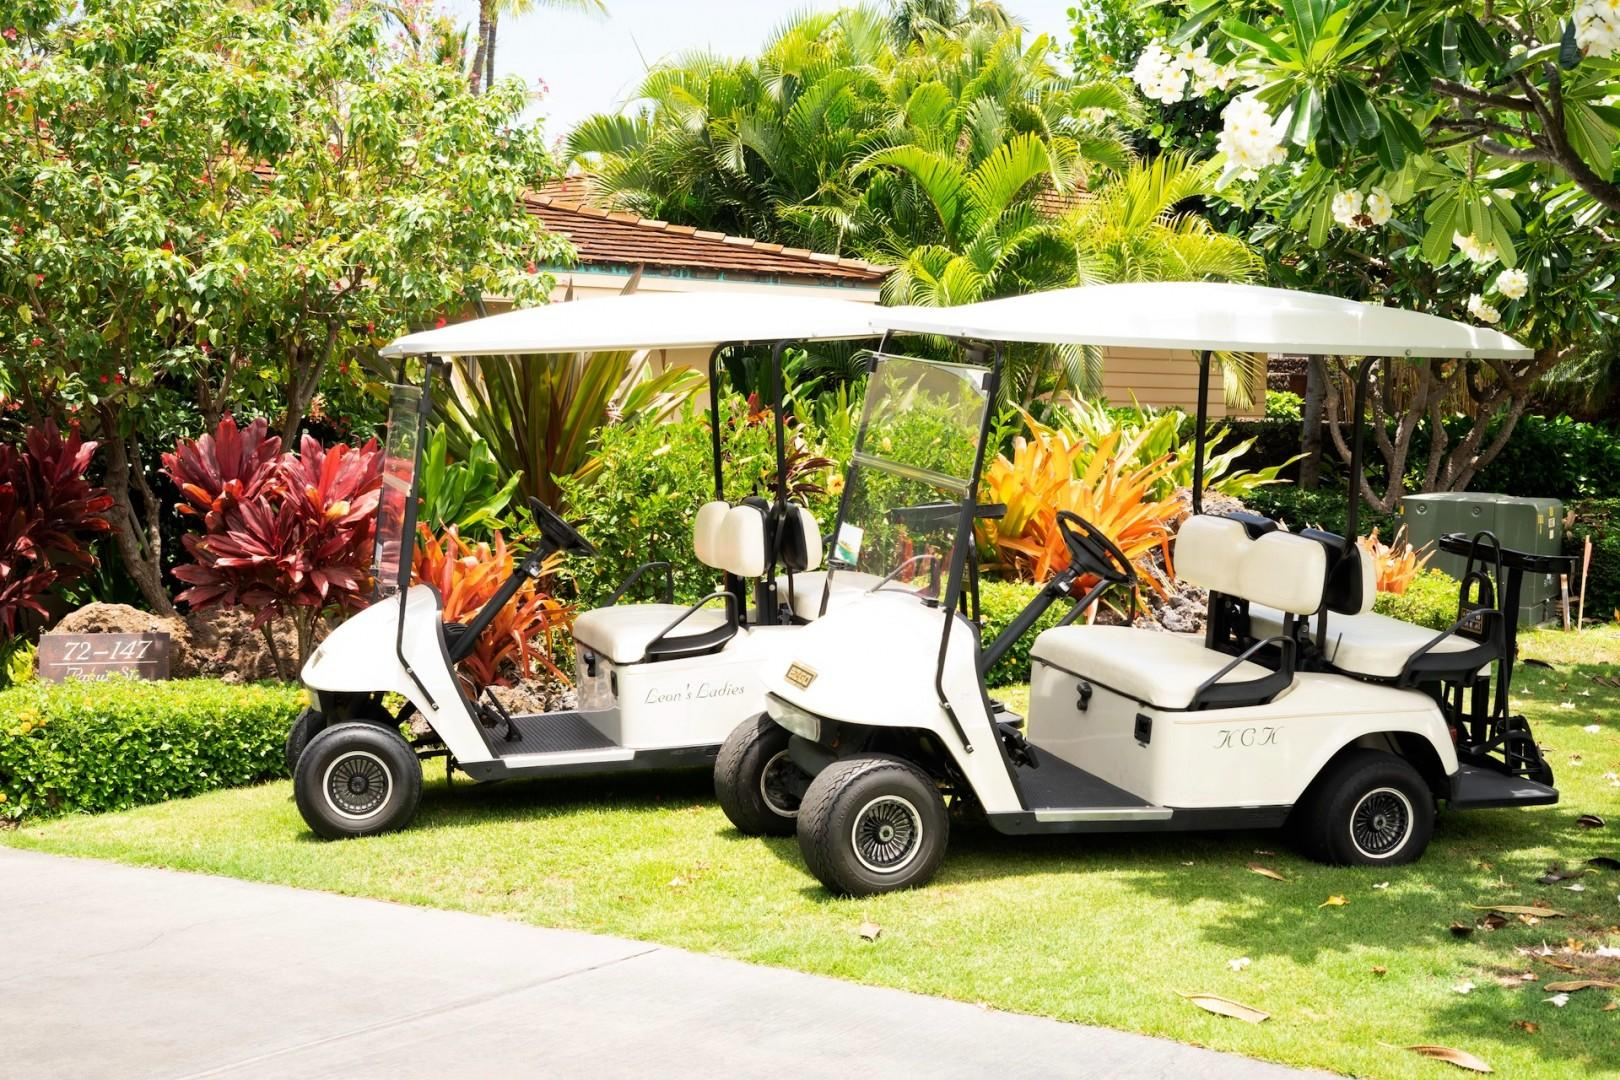 This rental comes with two 4-seater golf carts.